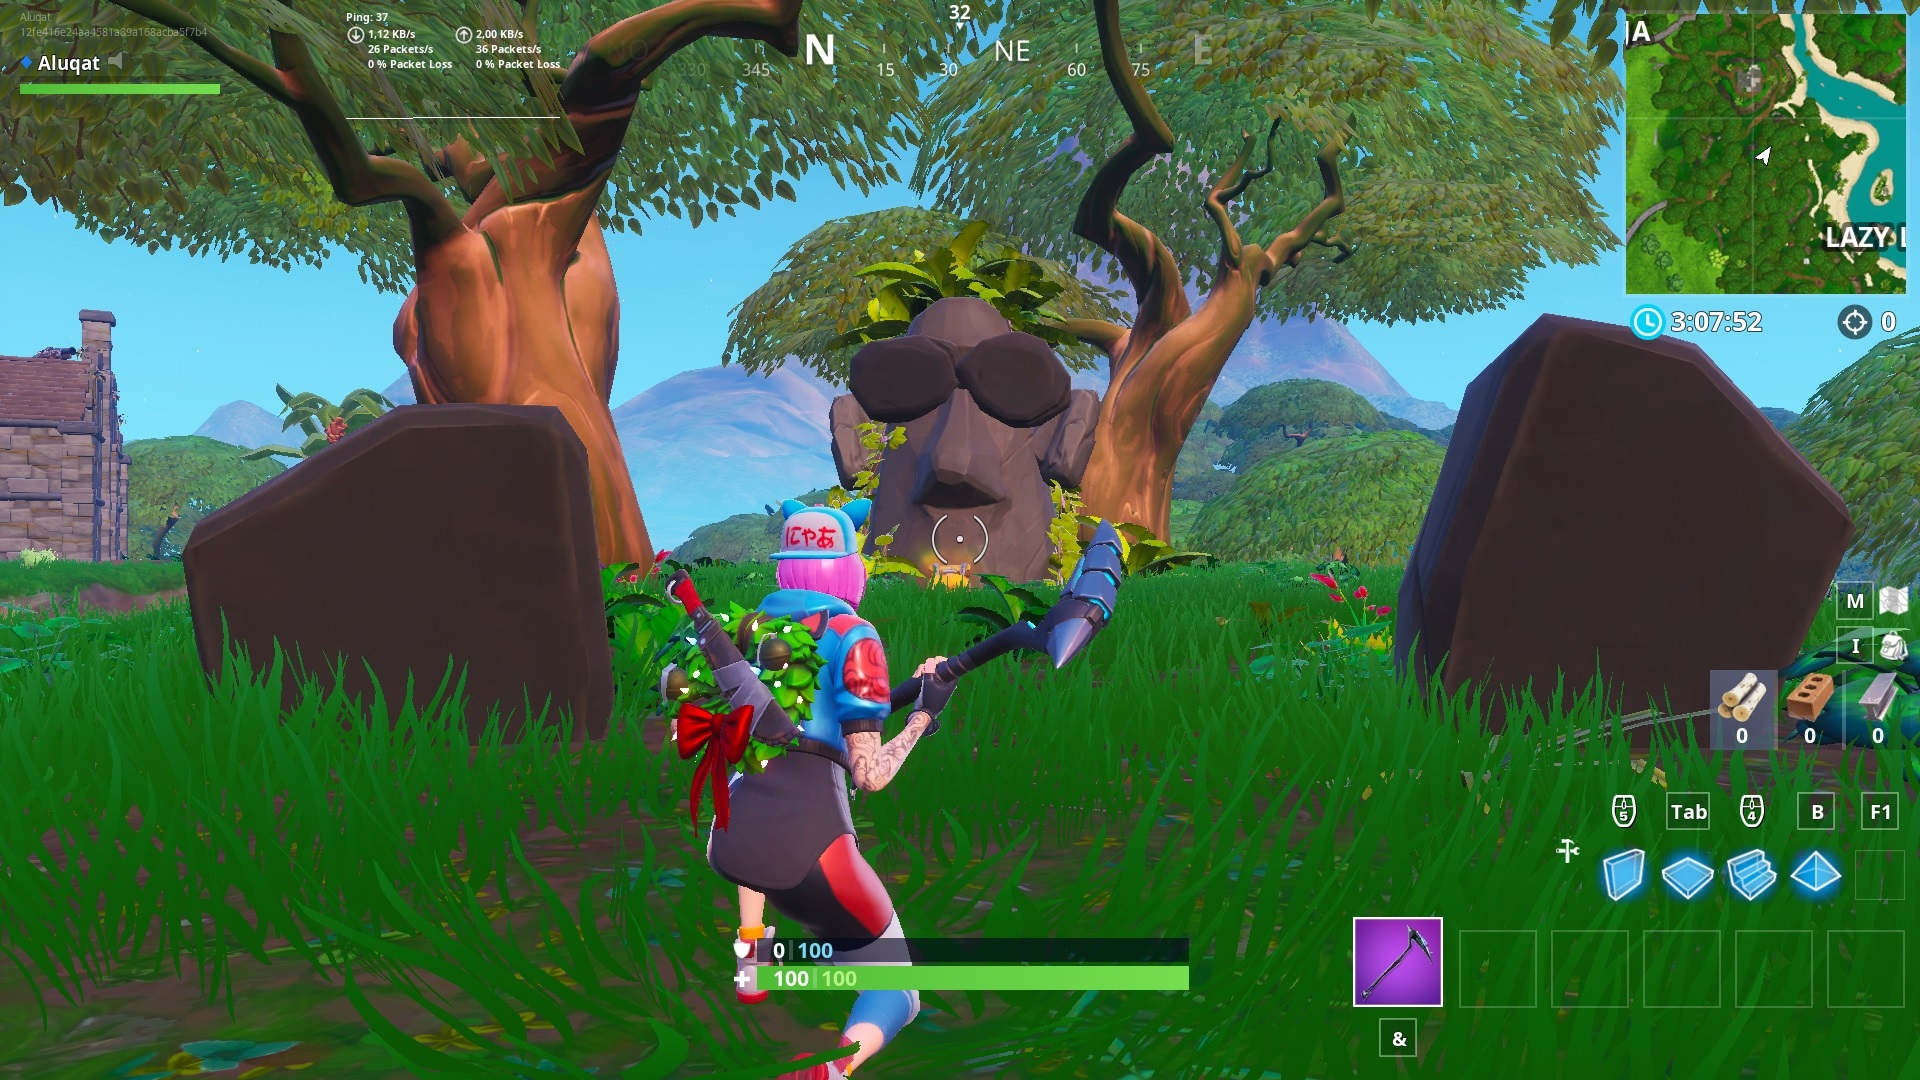 Etoile De Combat Fortnite Semaine 6 Fortnite Generator